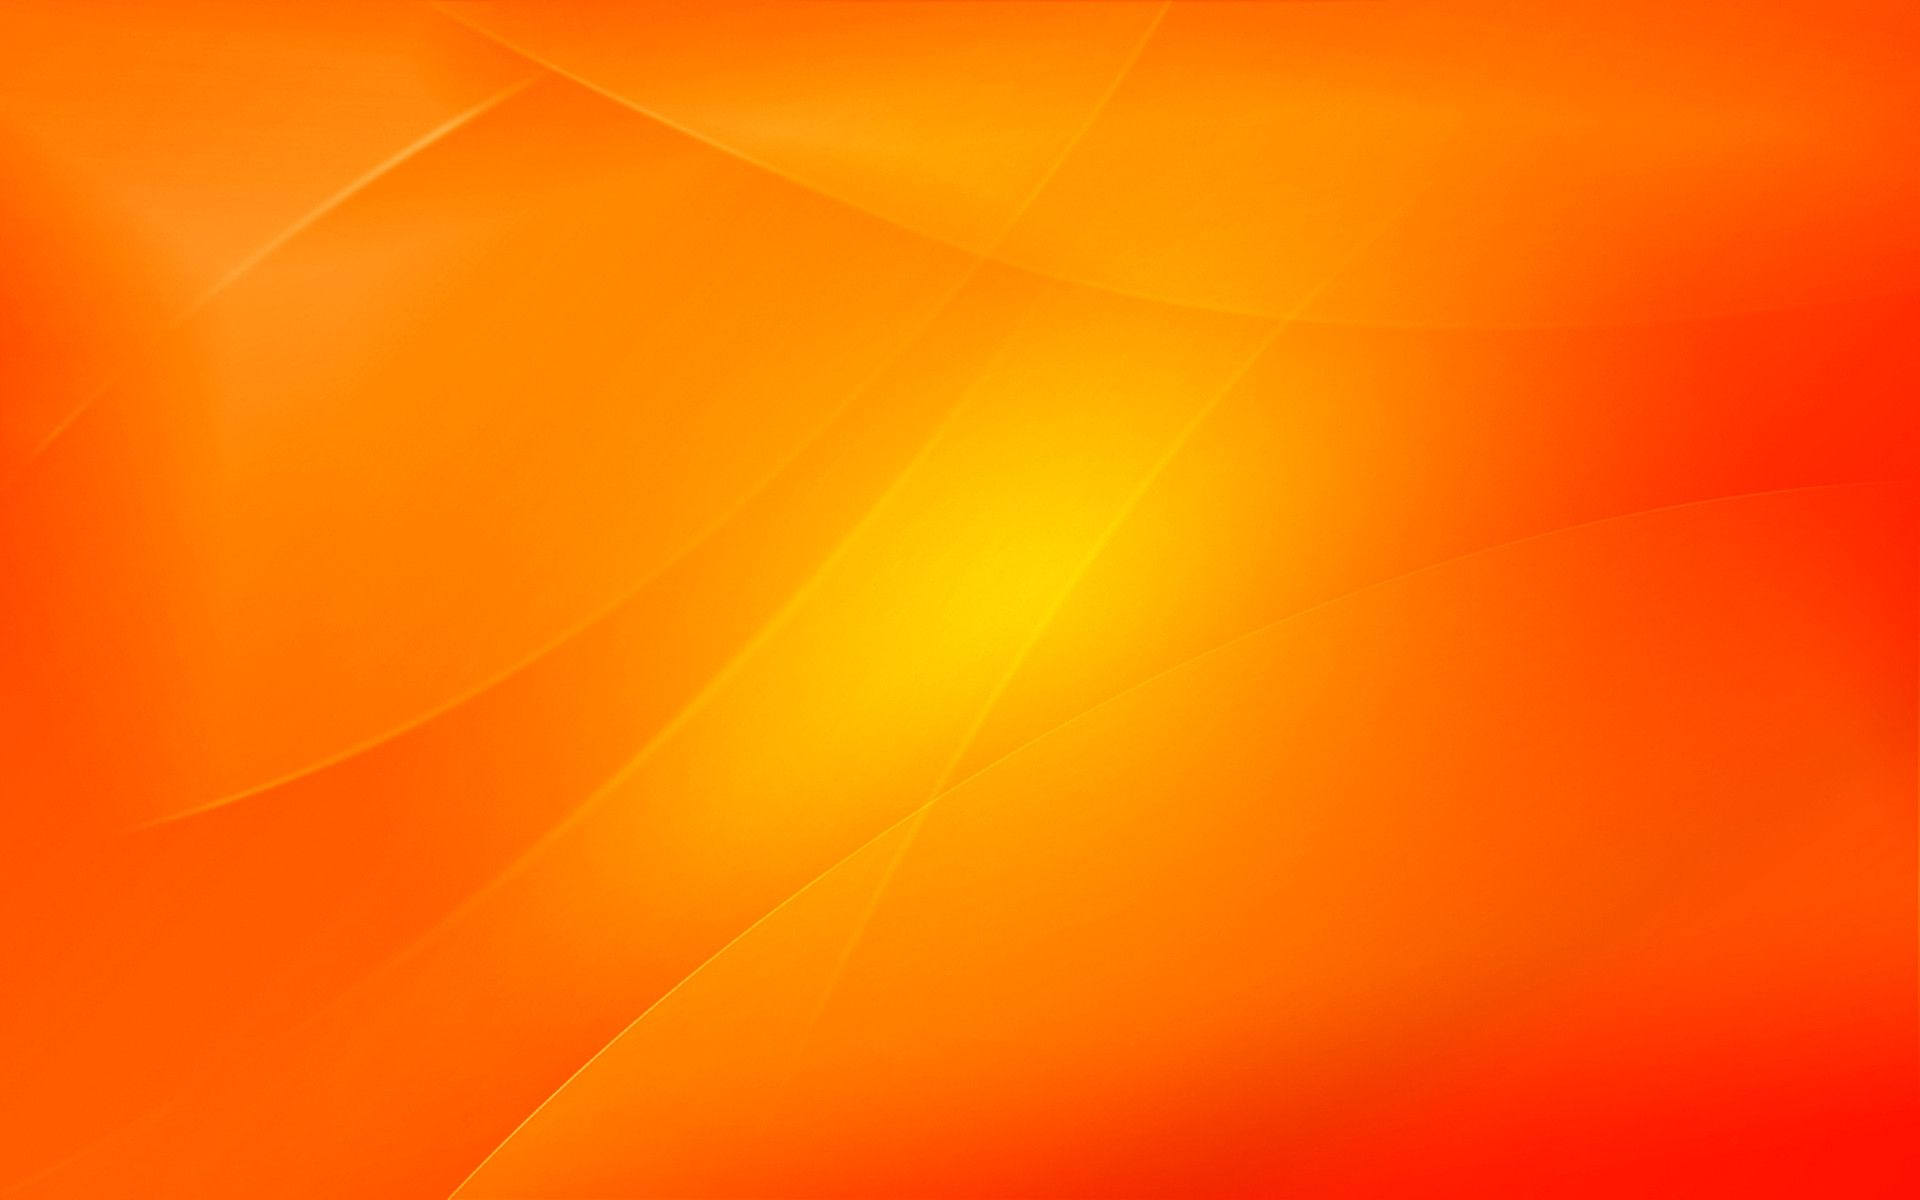 21 Orange Backgrounds Wallpapers Images Pictures FreeCreatives